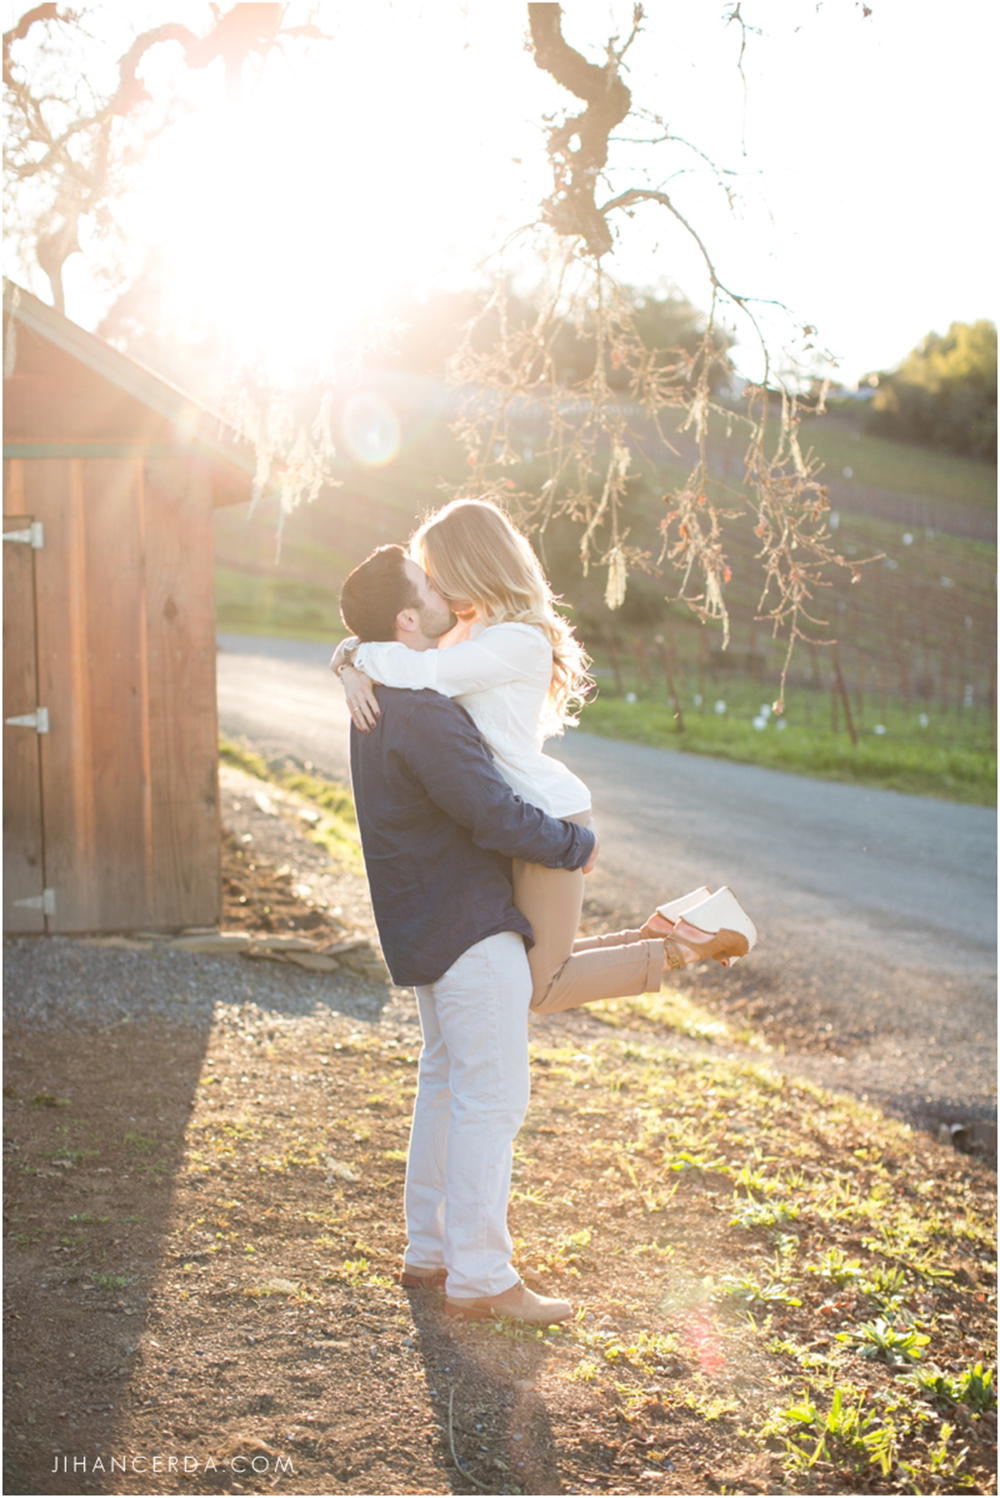 ENGAGEMENT PHOTOS TIPS AND TRENDS SUNLIGHT KISS